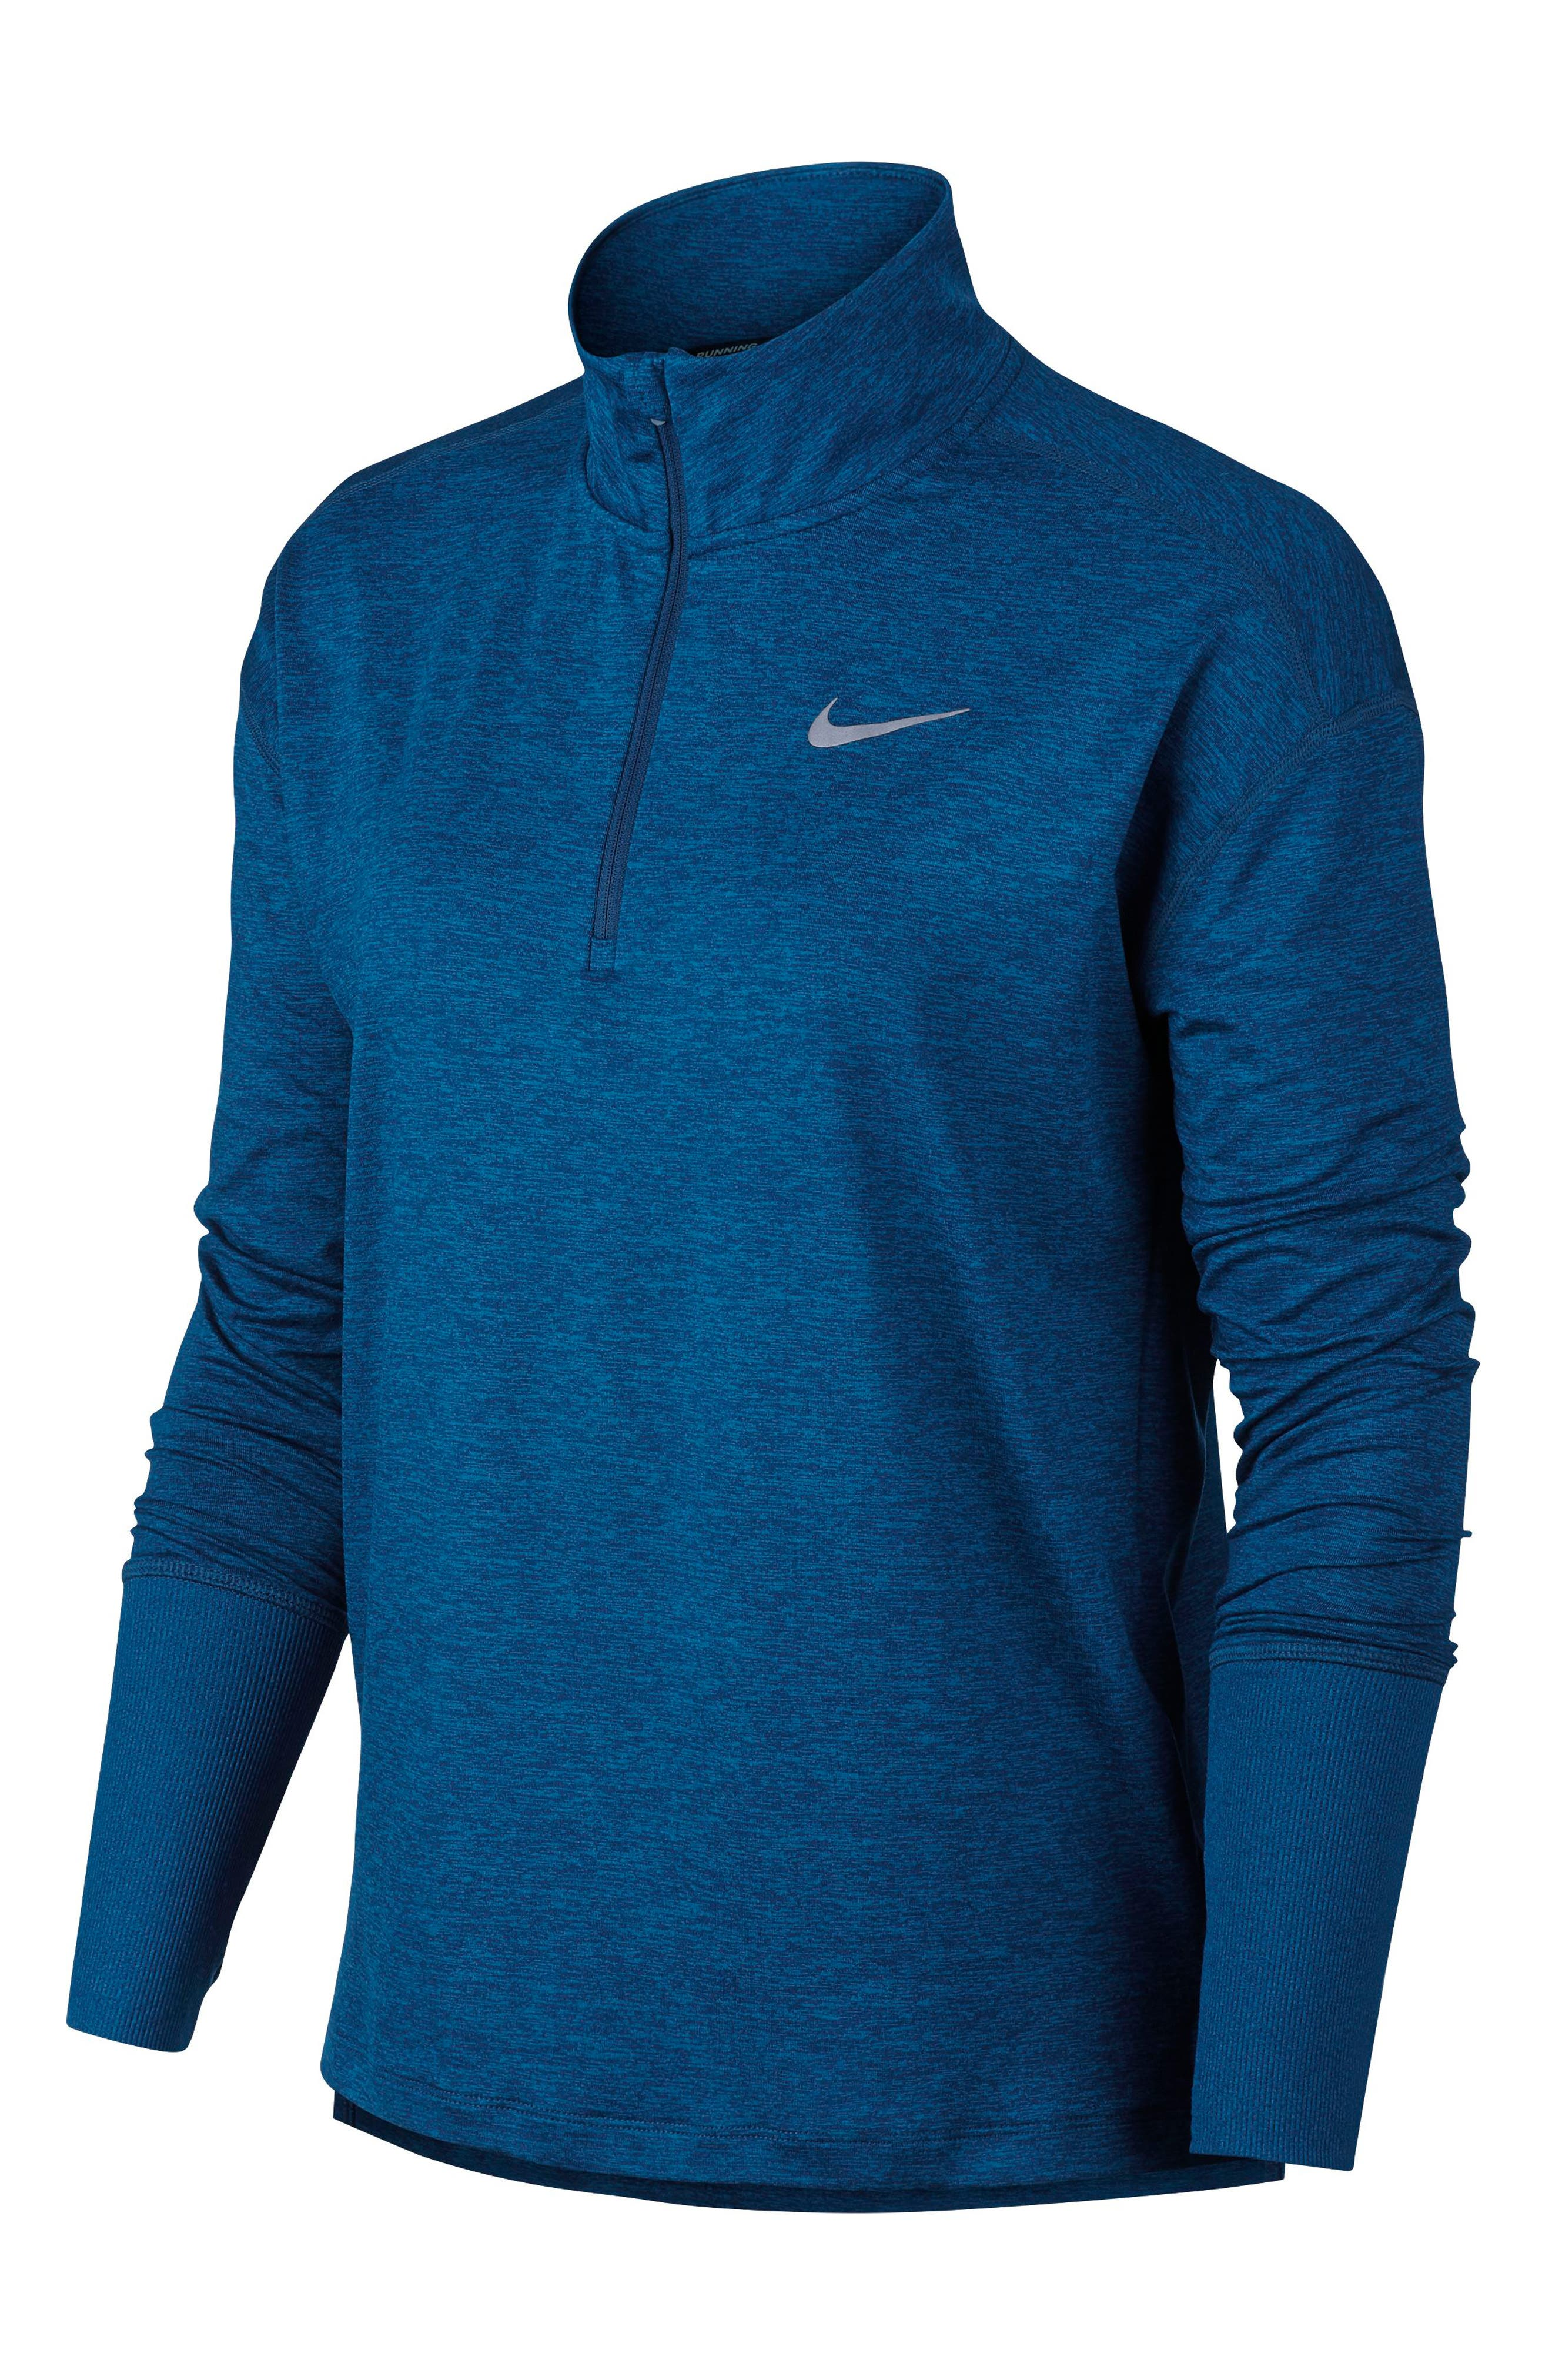 Element Long-Sleeve Running Top,                         Main,                         color, BLUE FORCE/ GREEN ABYSS